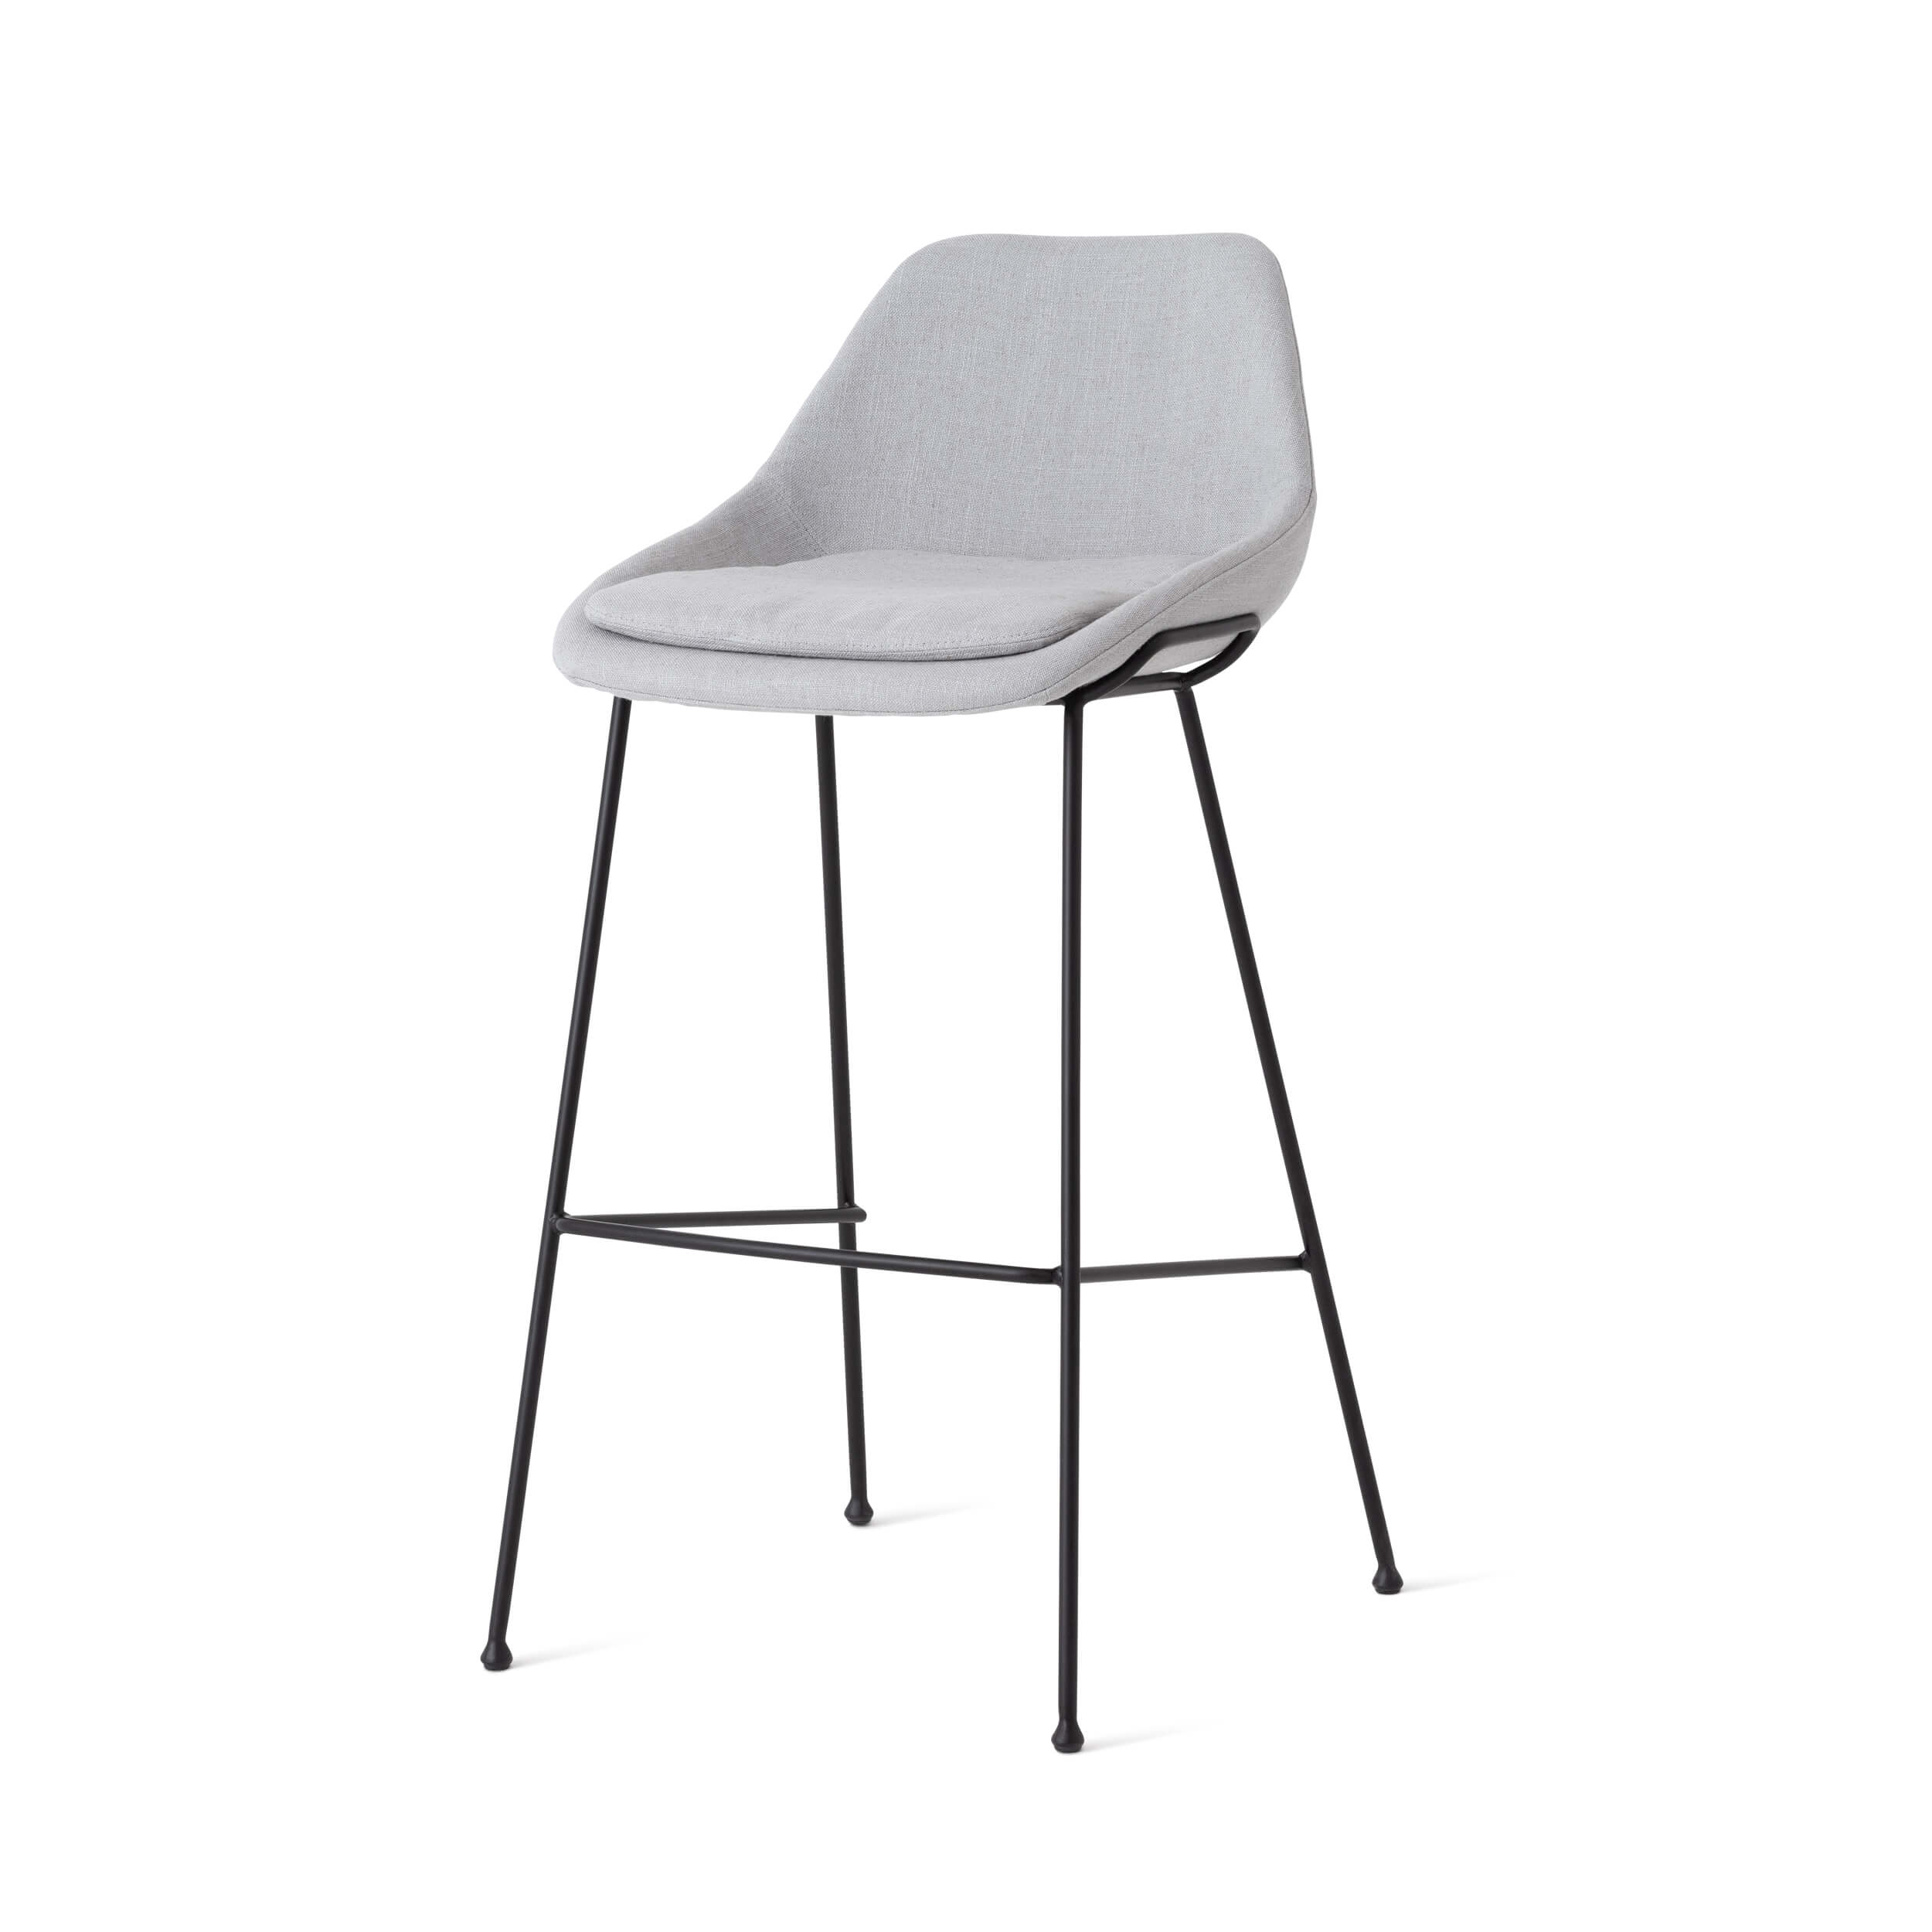 Image of: Modern Bar Stools And Counter Height Stools Eq3